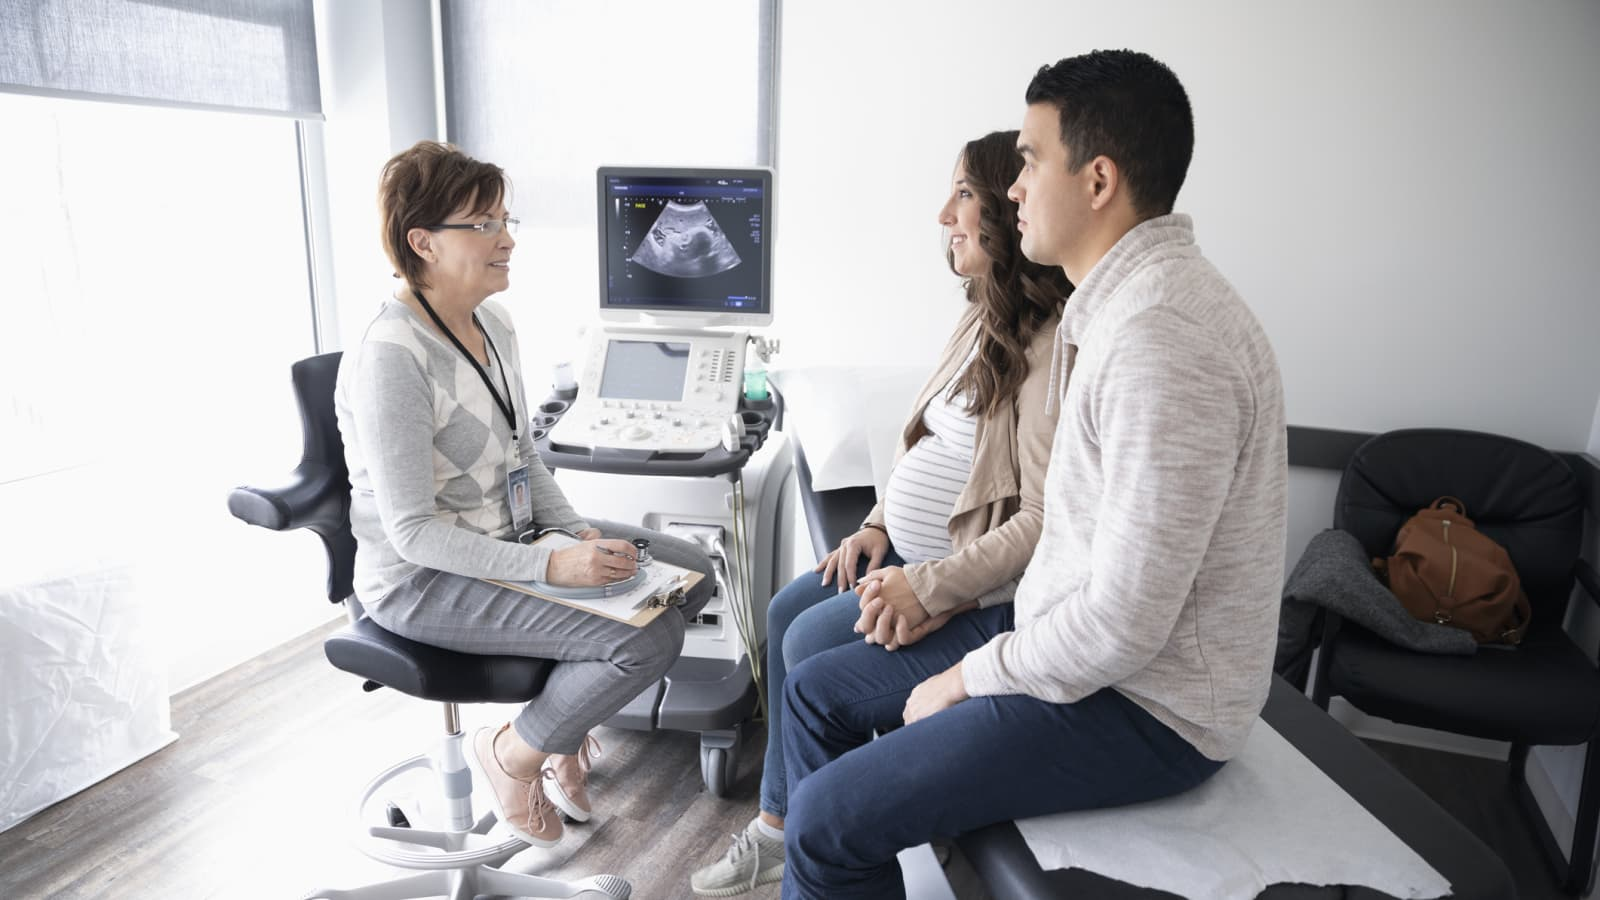 When your insurer does not cover your maternity costs